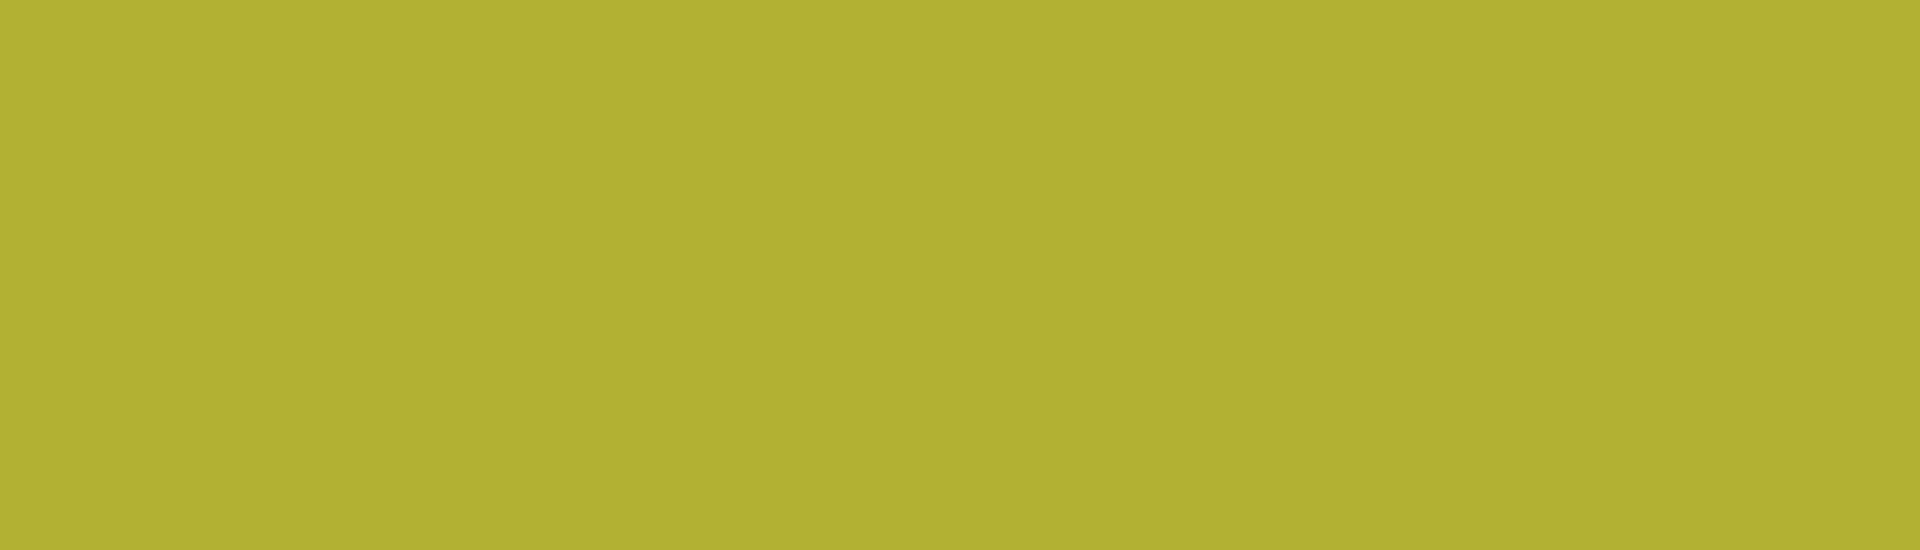 Bright spring green solid background